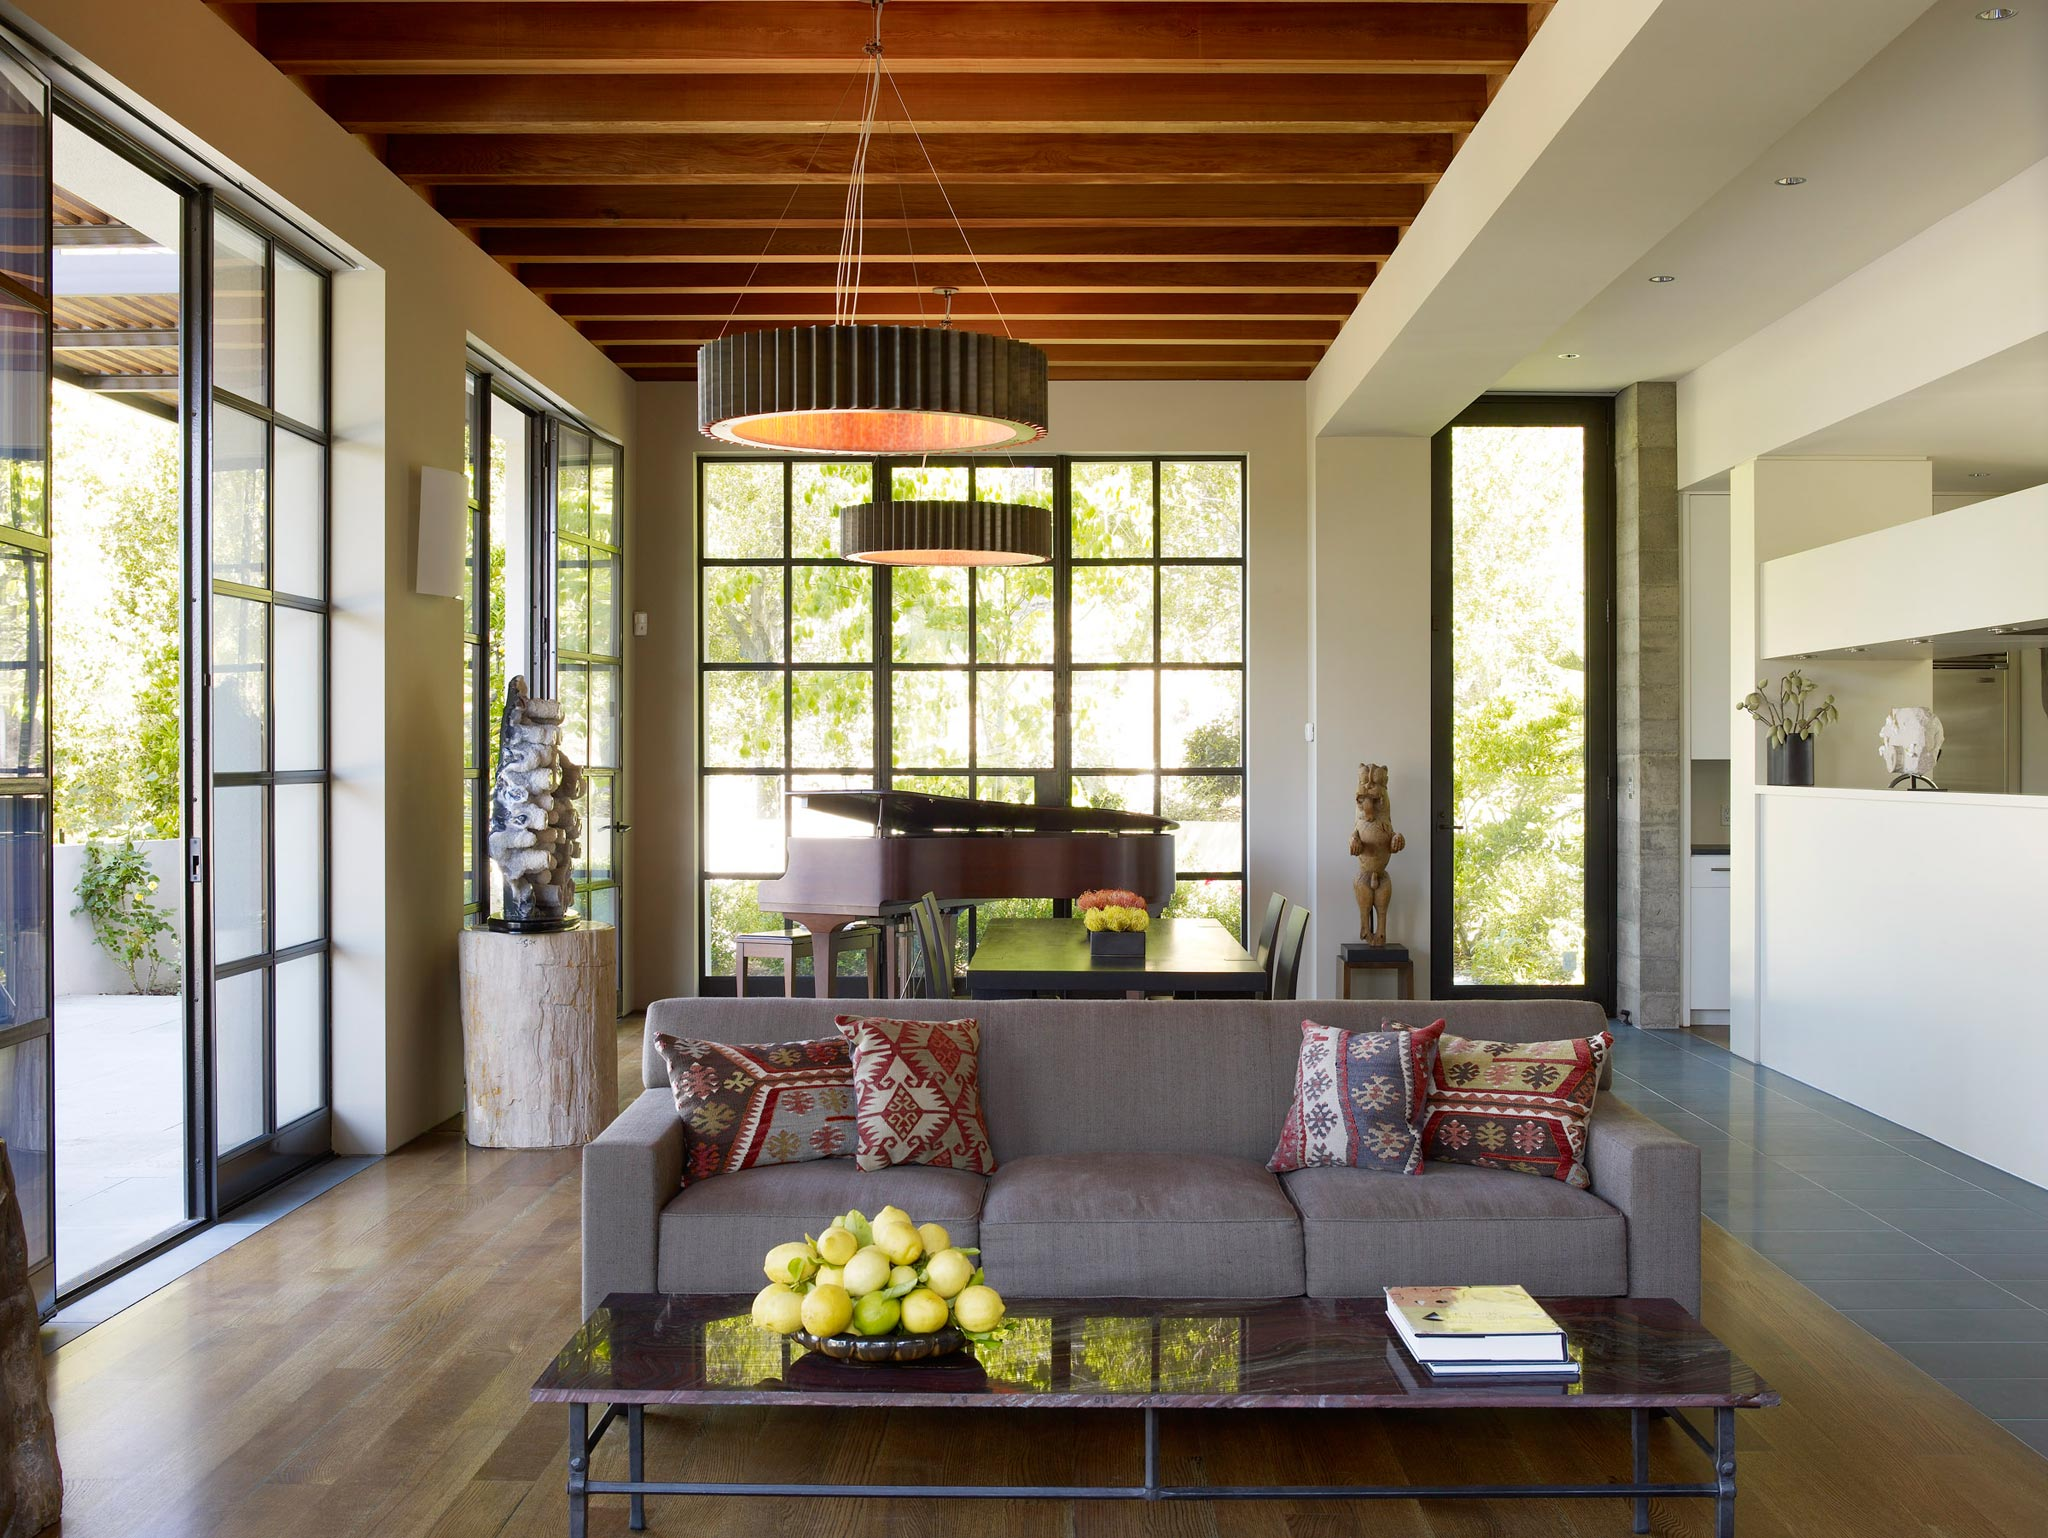 Claremont modern aesthetic pavillon house guest inside view of living area facing a couch